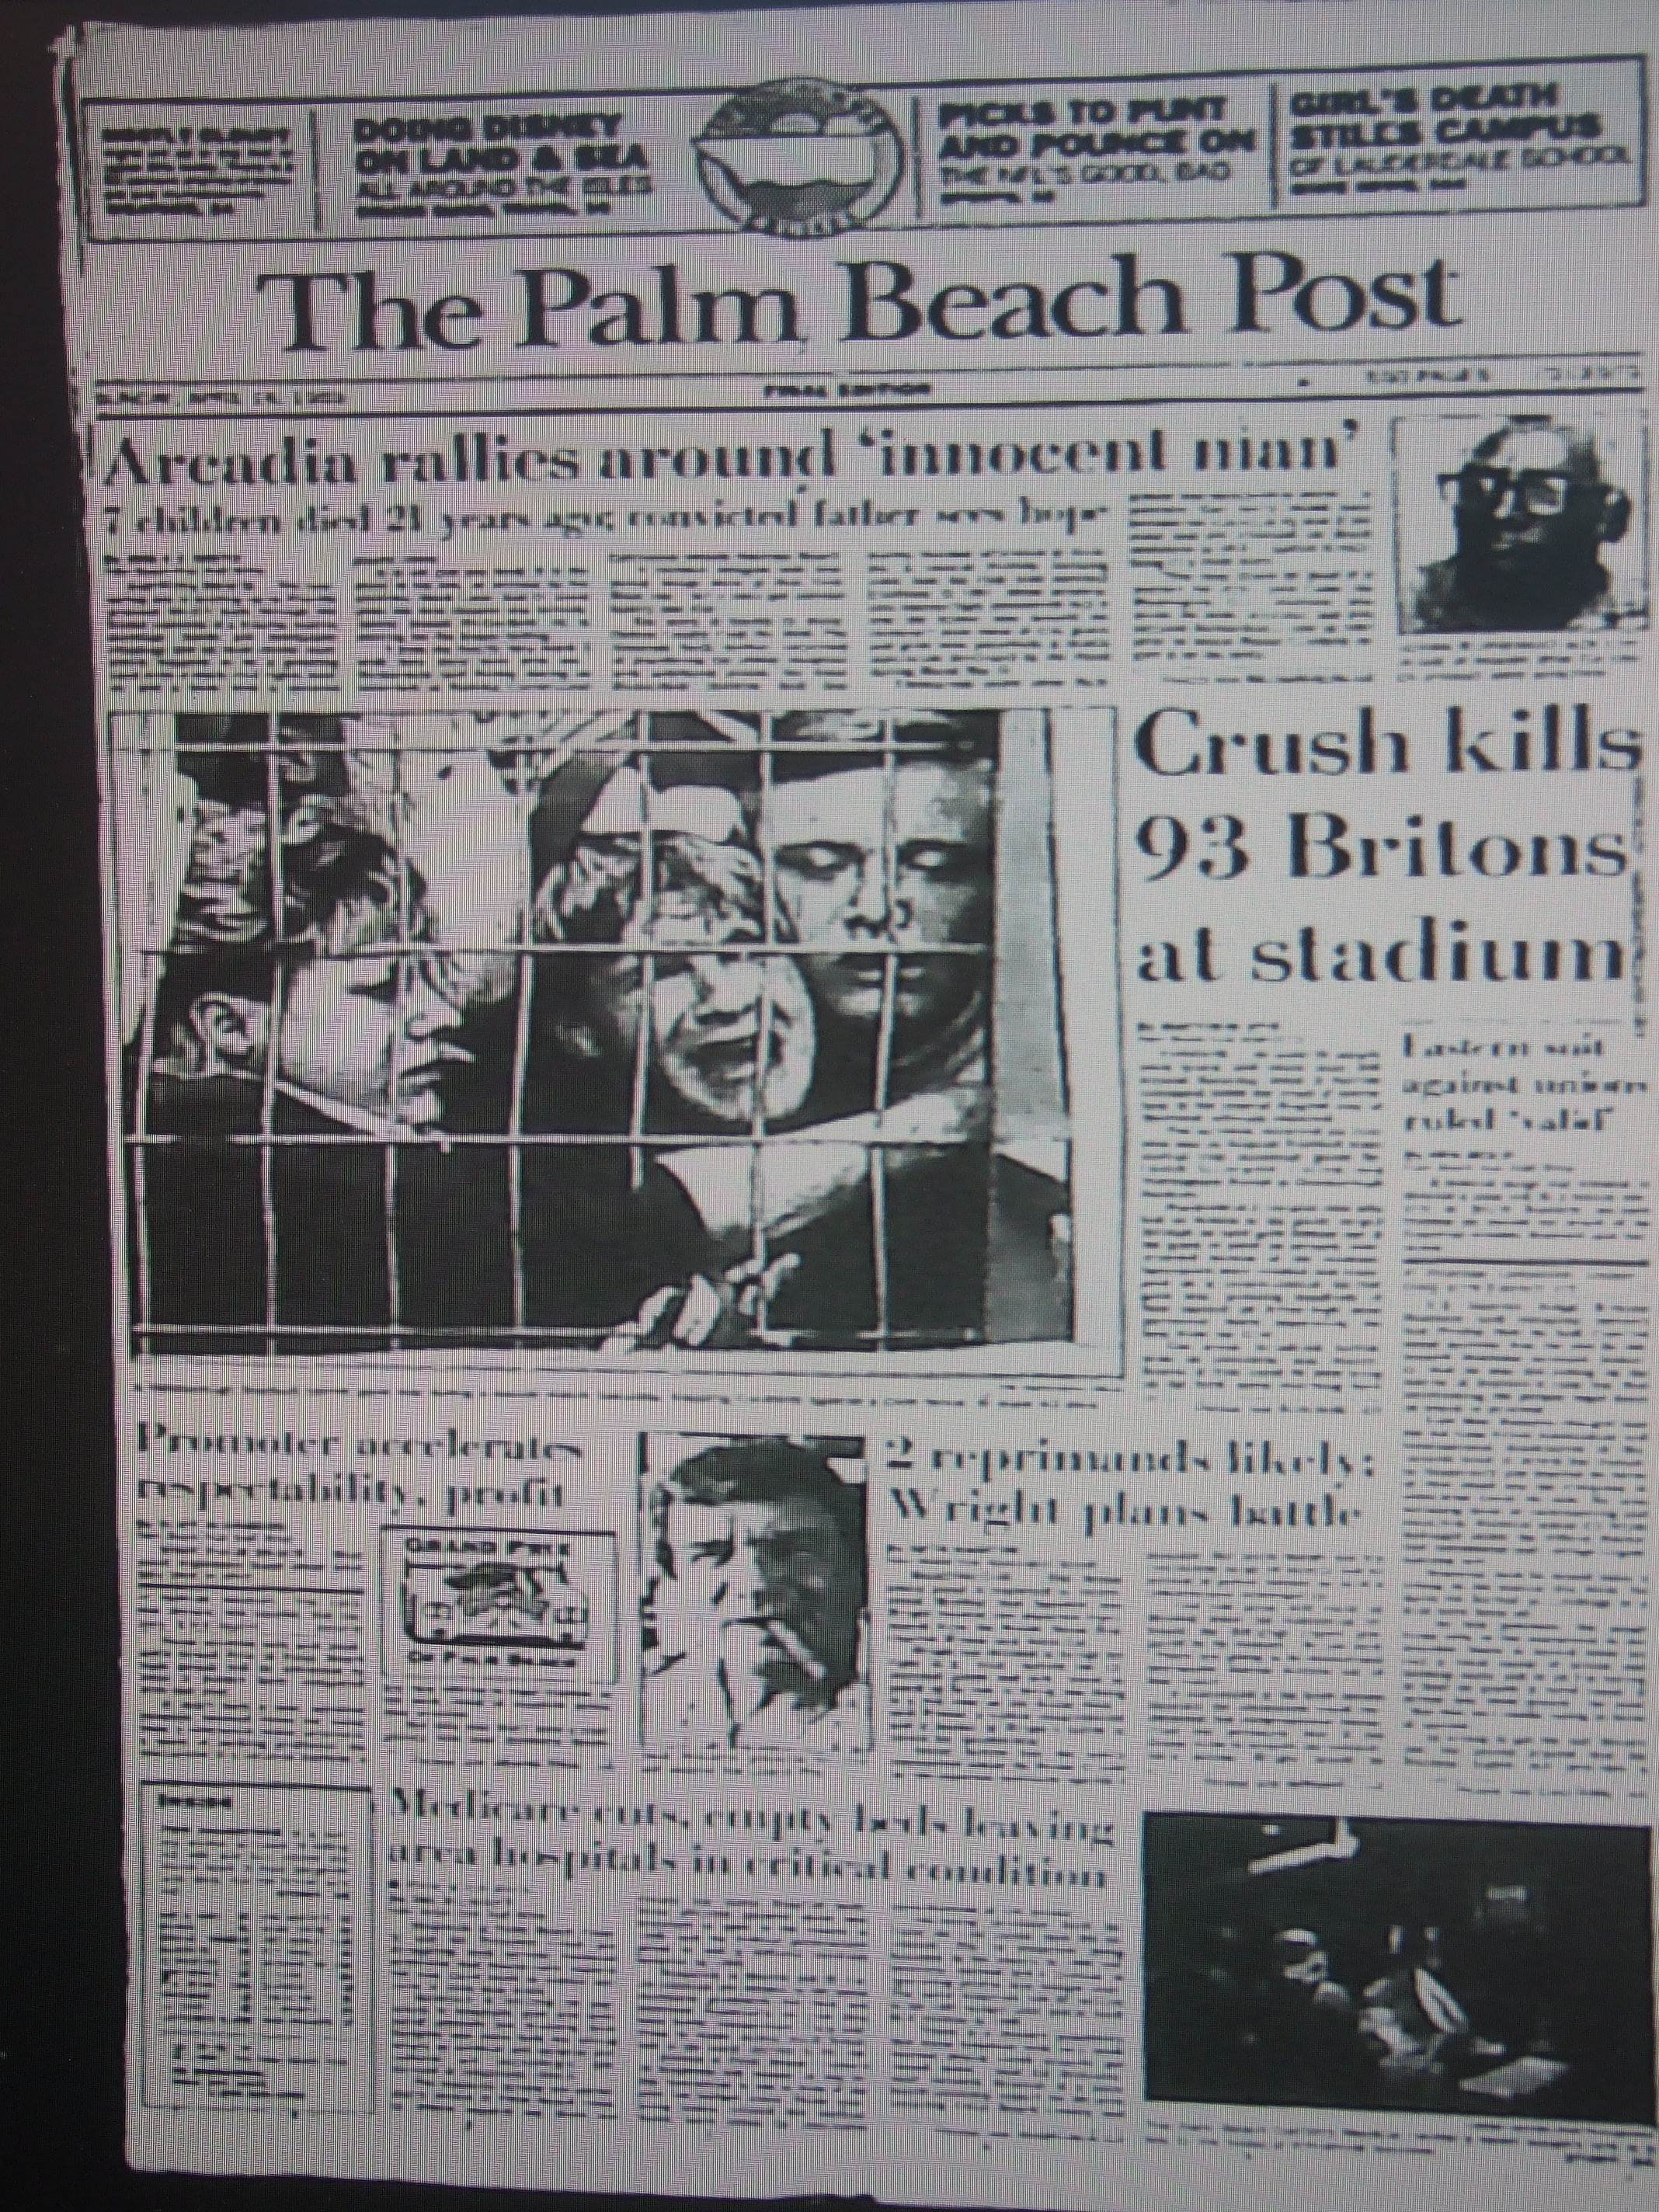 Hillsborough Disaster As Reported By U.S. Newspaper ...